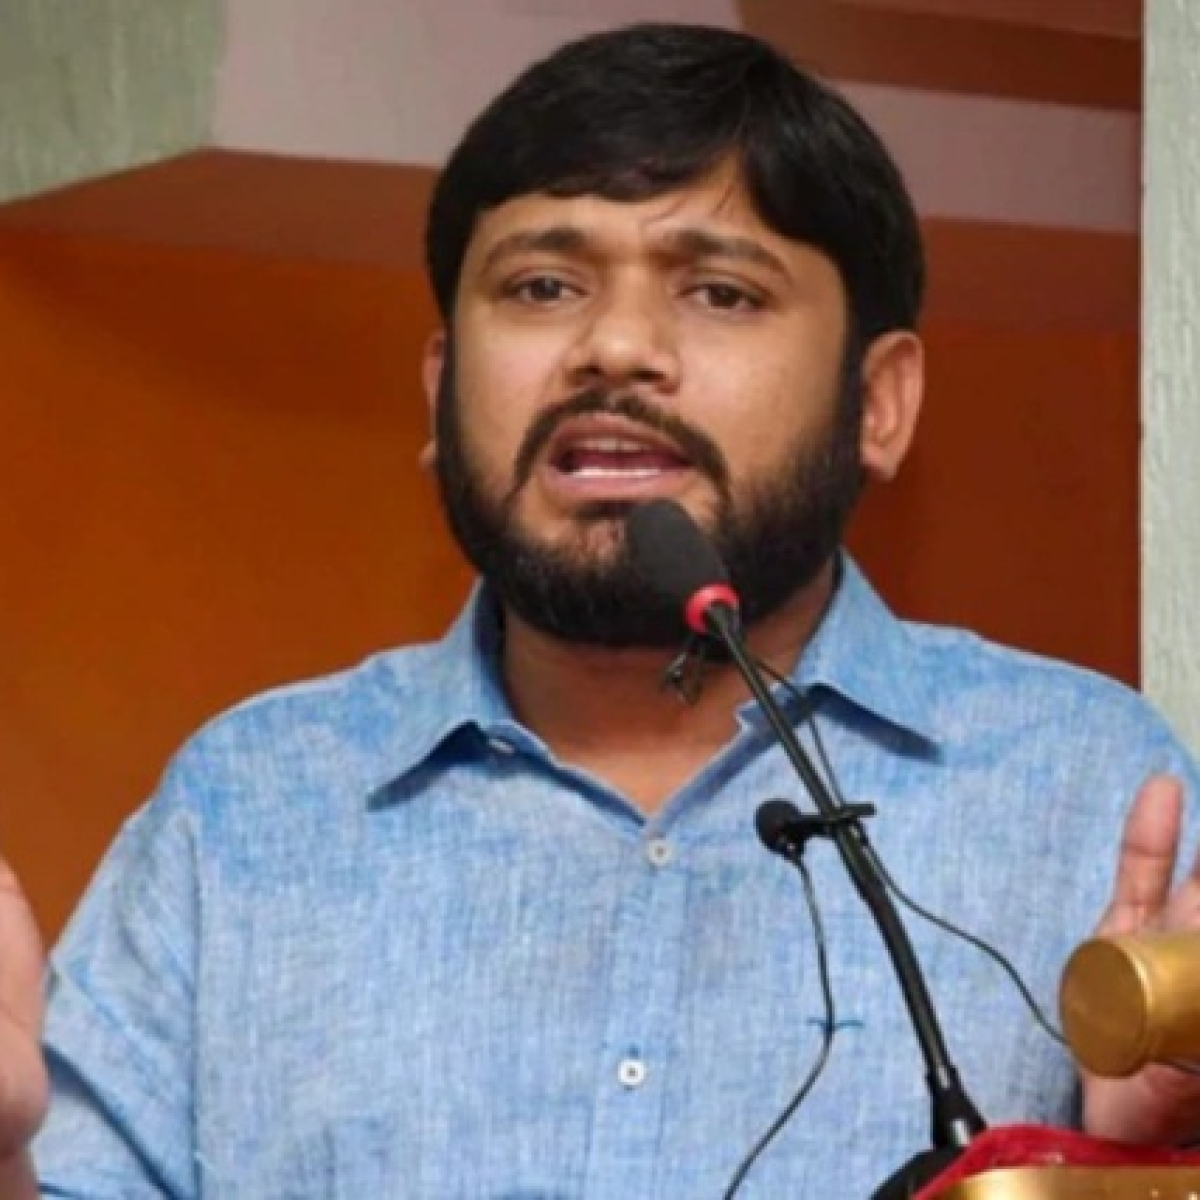 'Best orator since Modi': Twitter hails Kanhaiya Kumar for taking down BJP spox during TV debate